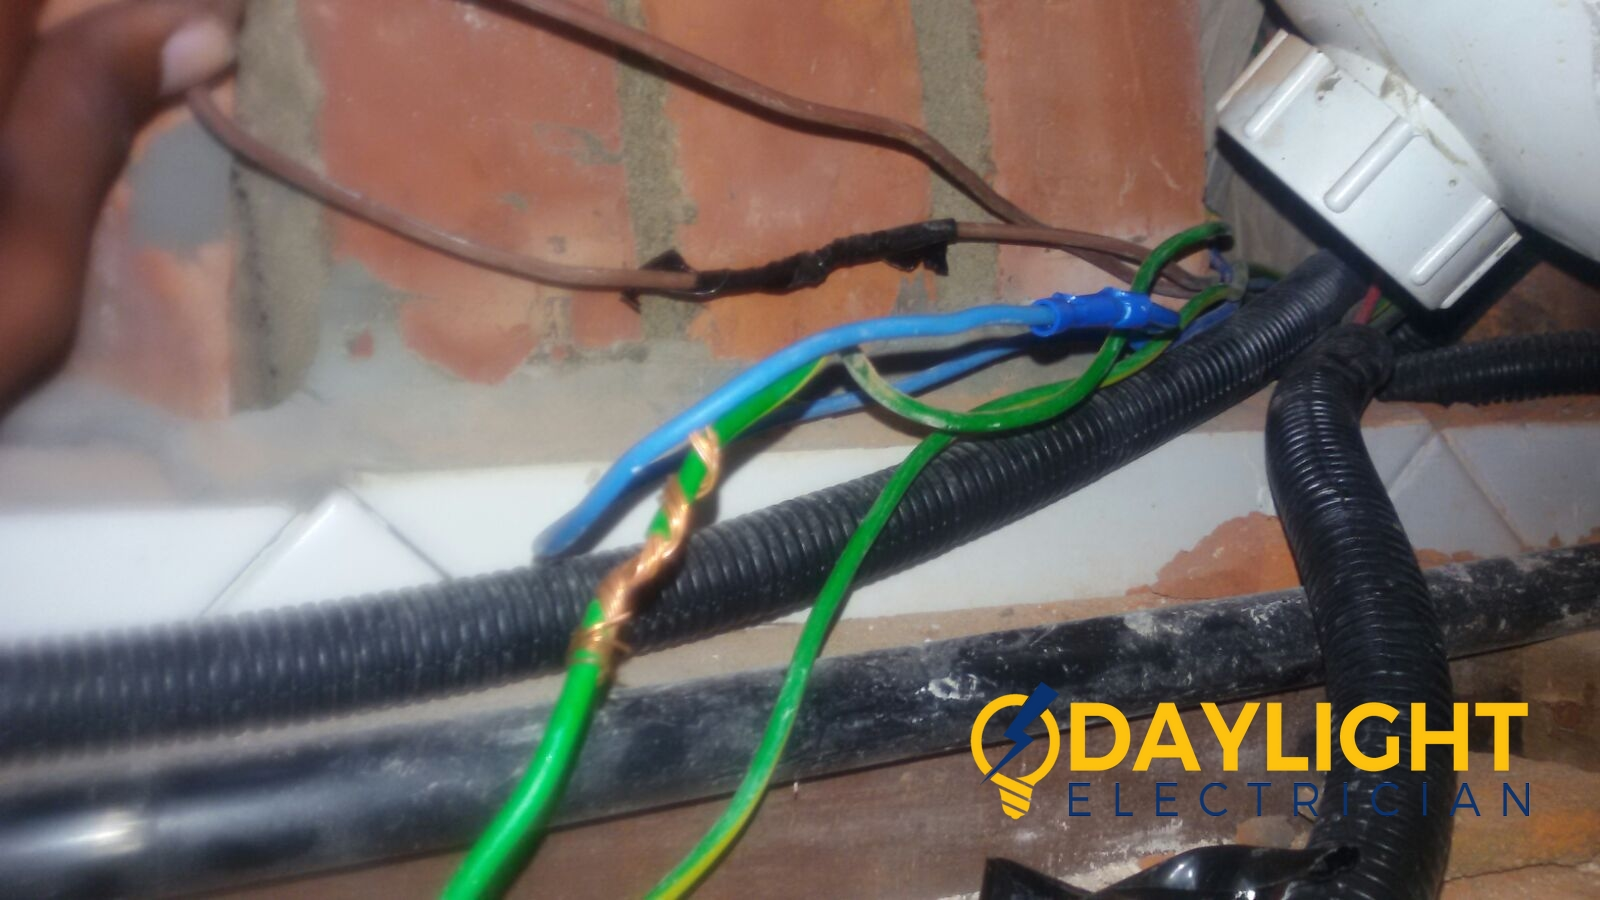 solve-water-heater-power-fault-troubleshoot-rewire-proper-cable-connection-electrician-singapore-landed-loyang-4_wm